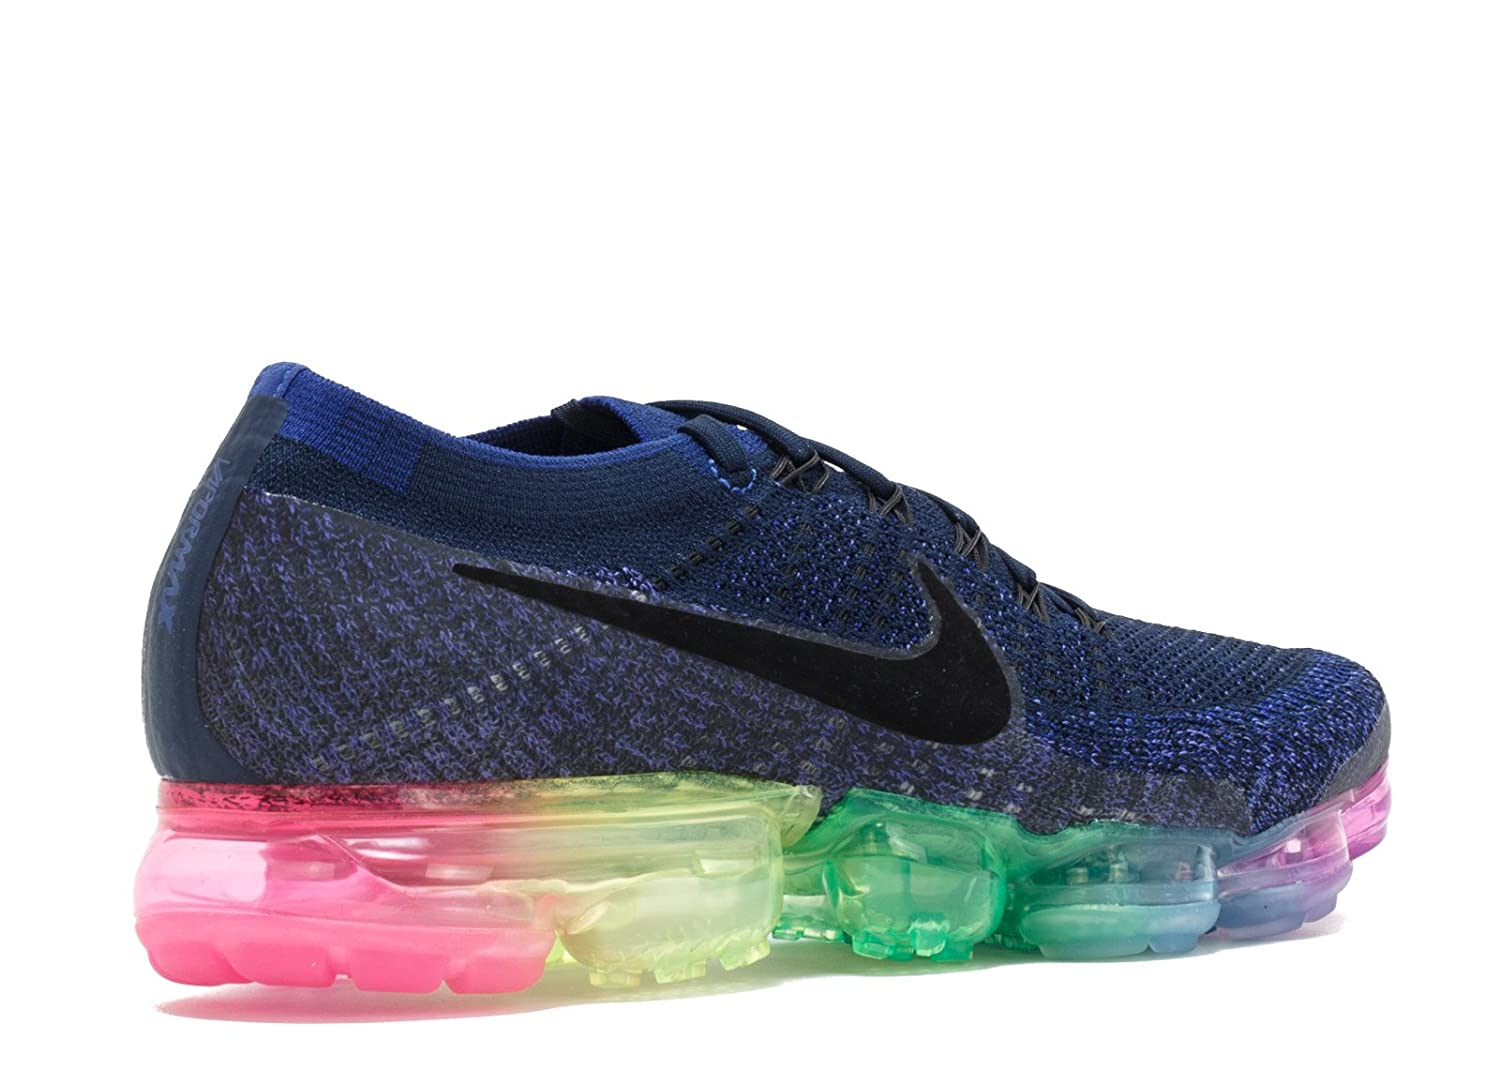 detailing 43820 ad96d Amazon.com   NIKE Air Vapormax Flyknit BETRUE  Be True  - 883275-400 - US  SIZE 14   Fashion Sneakers